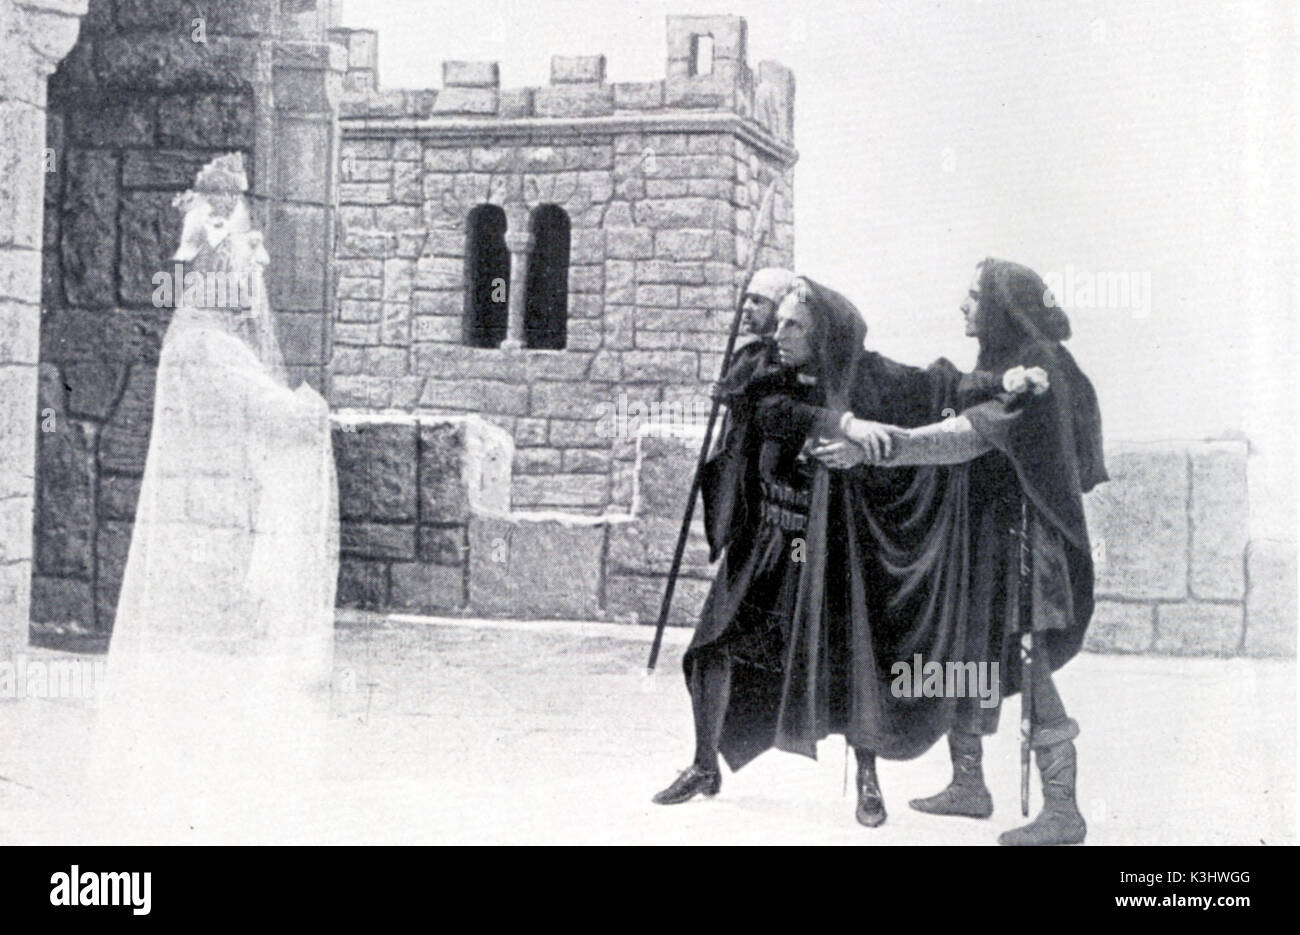 HAMLET [BR 1913]  PERCY RHODES as the ghost of Hamlet's father, SIR JOHNSTON FORBES ROBERTSON as Hamlet, ROBERT ATKINS as Marcellus *** Local Caption *** DO NOT GO WITH IT ENTREATED MARCELLUS     Date: 1913 - Stock Image